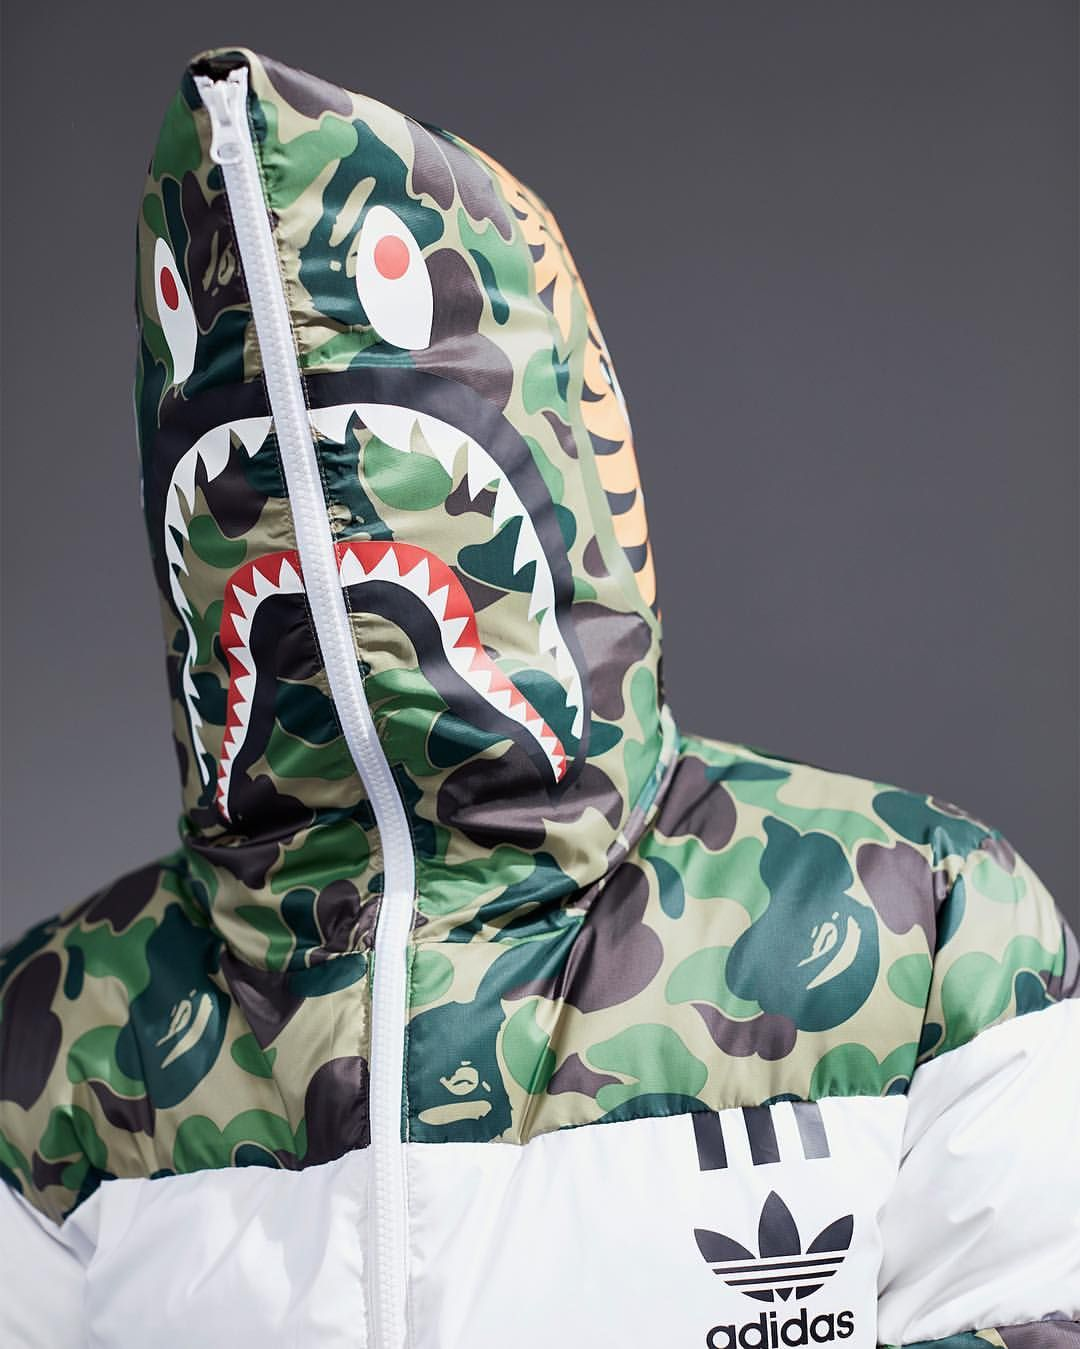 BAPE x adidas Originals Winter 2016 Collection